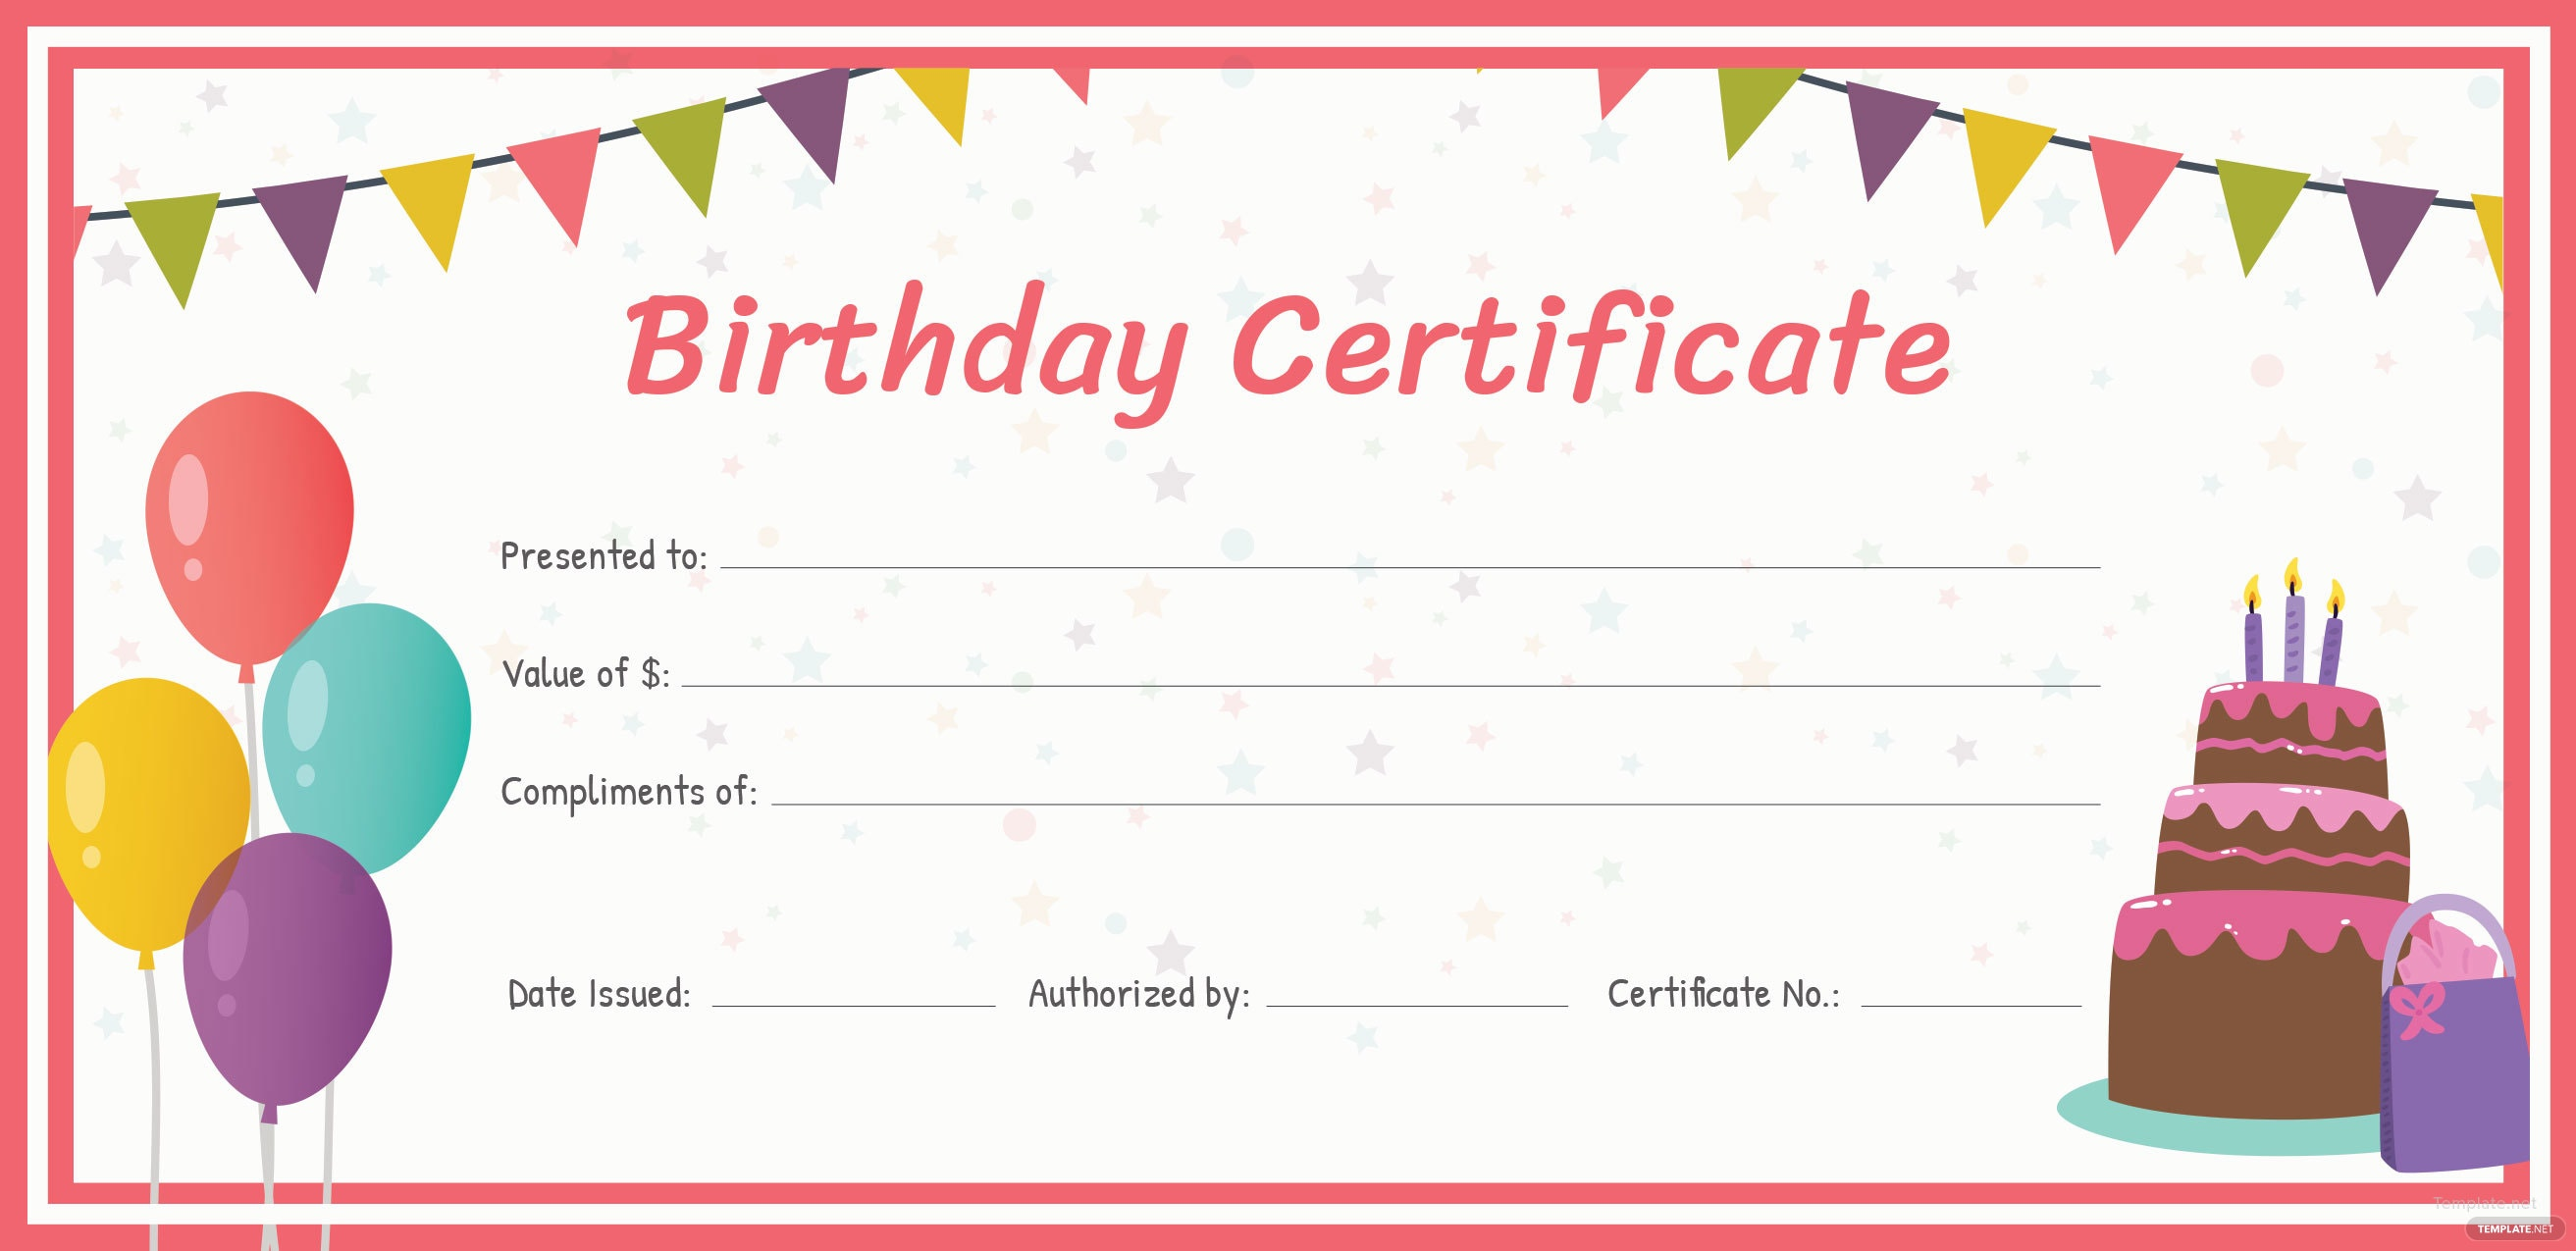 Free birthday gift certificate template in adobe for Gift certificate example templates